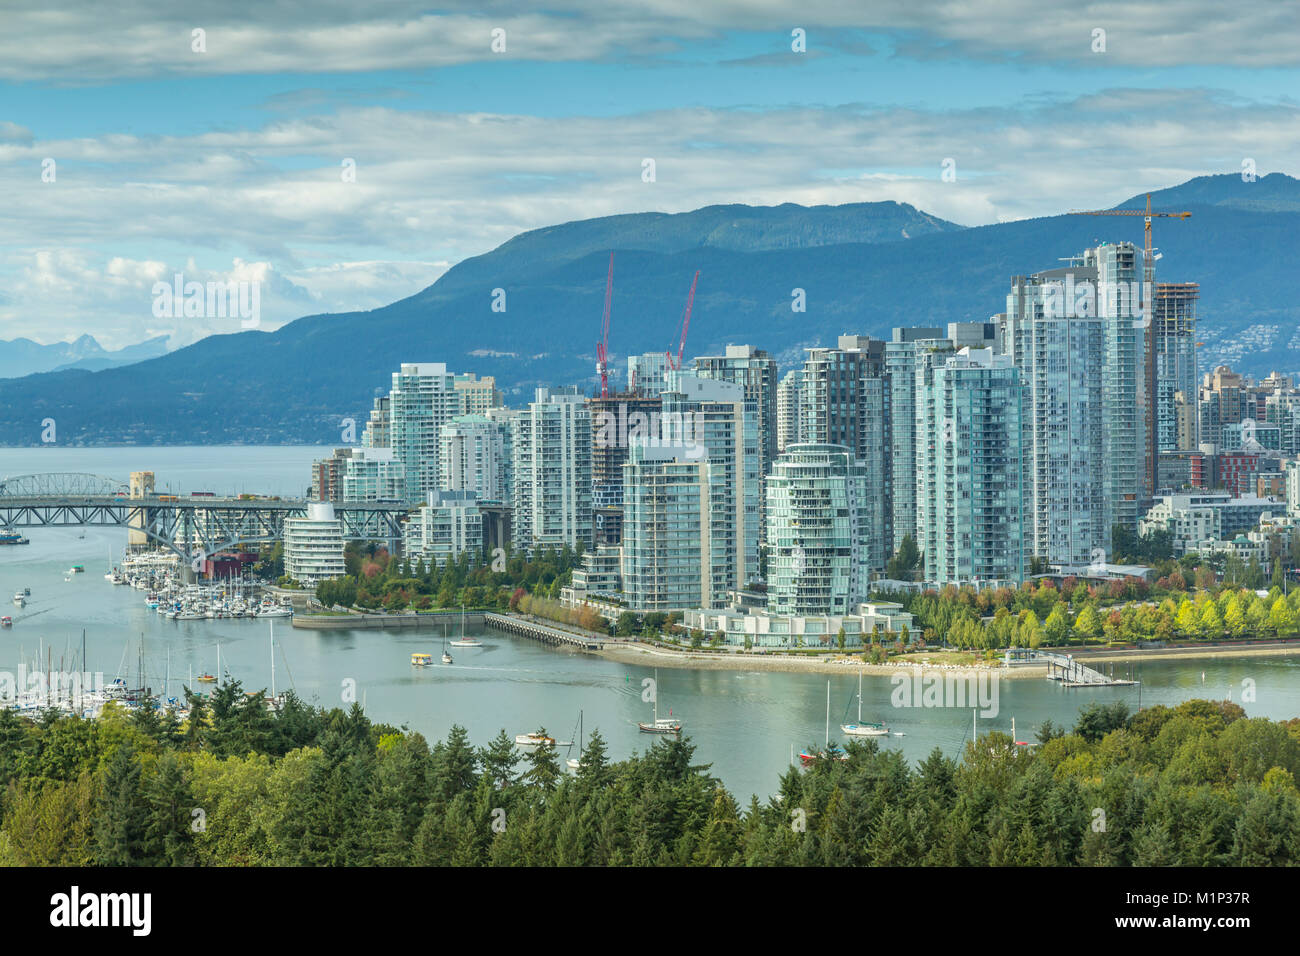 View of Vancouver skyline as viewed from Mount Pleasant District, Vancouver, British Columbia, Canada, North America - Stock Image